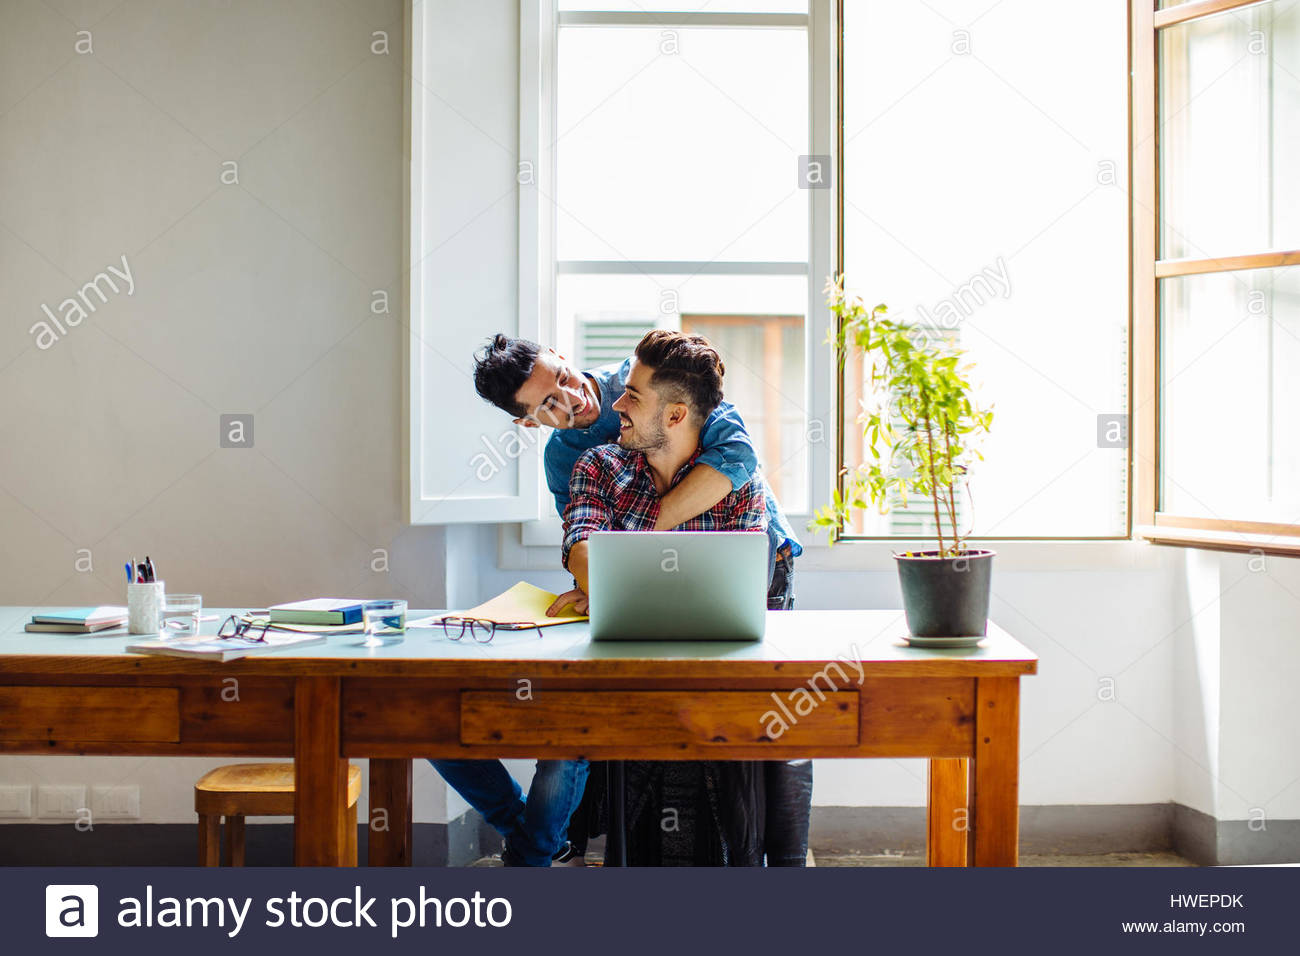 Male couple at home, man sitting at table using laptop, partner hugging him - Stock Image